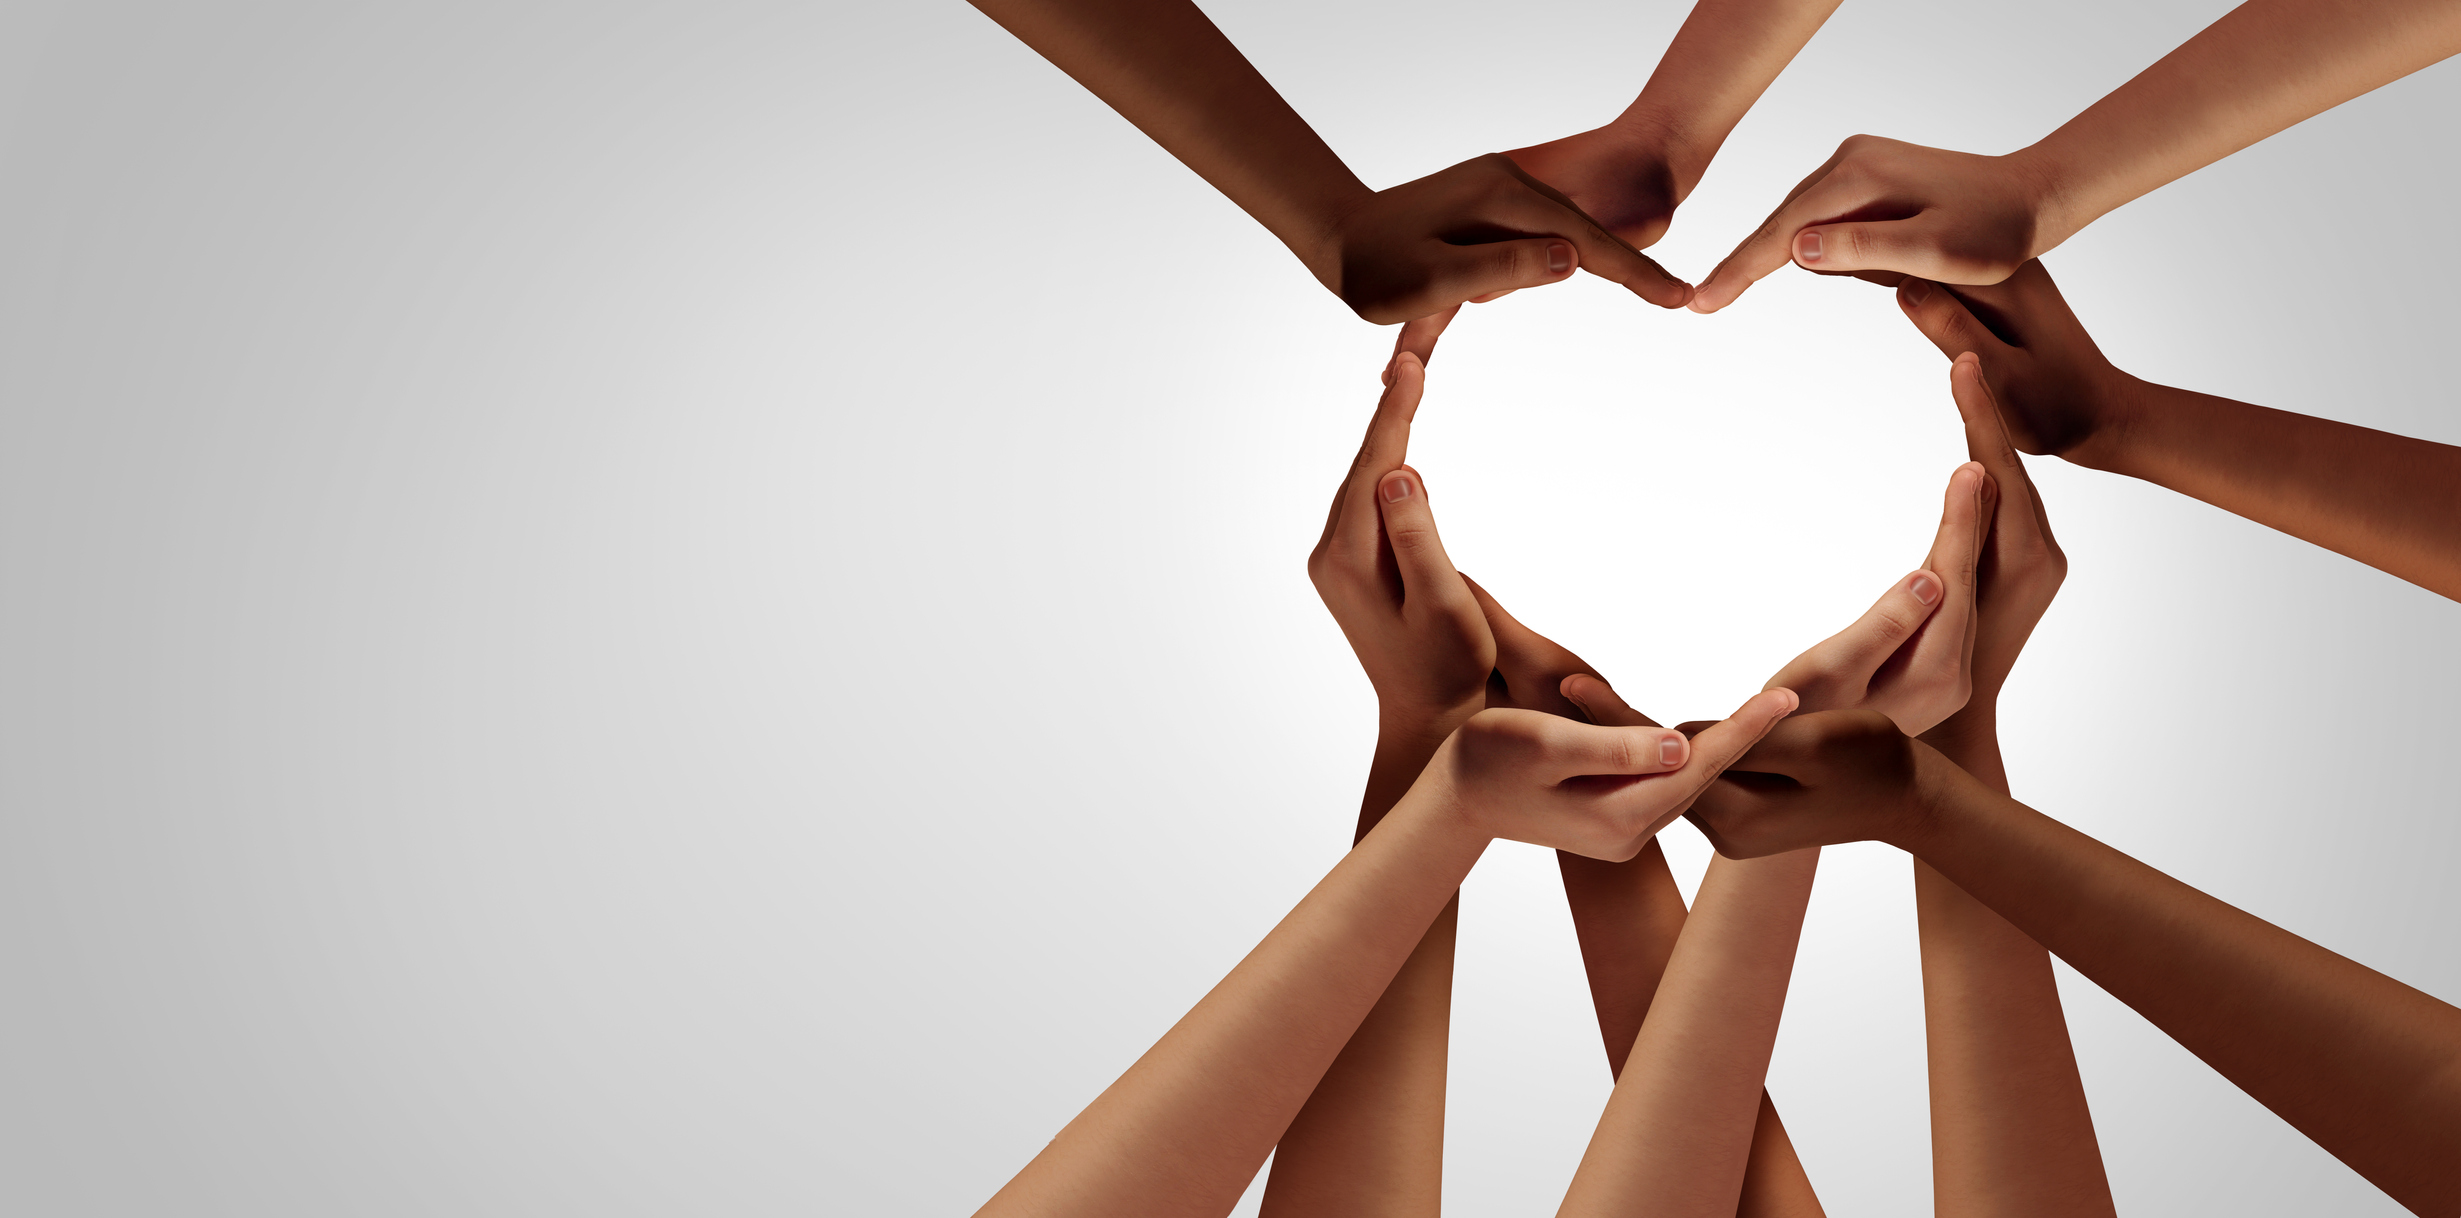 multicultural hands forming heart healing racism